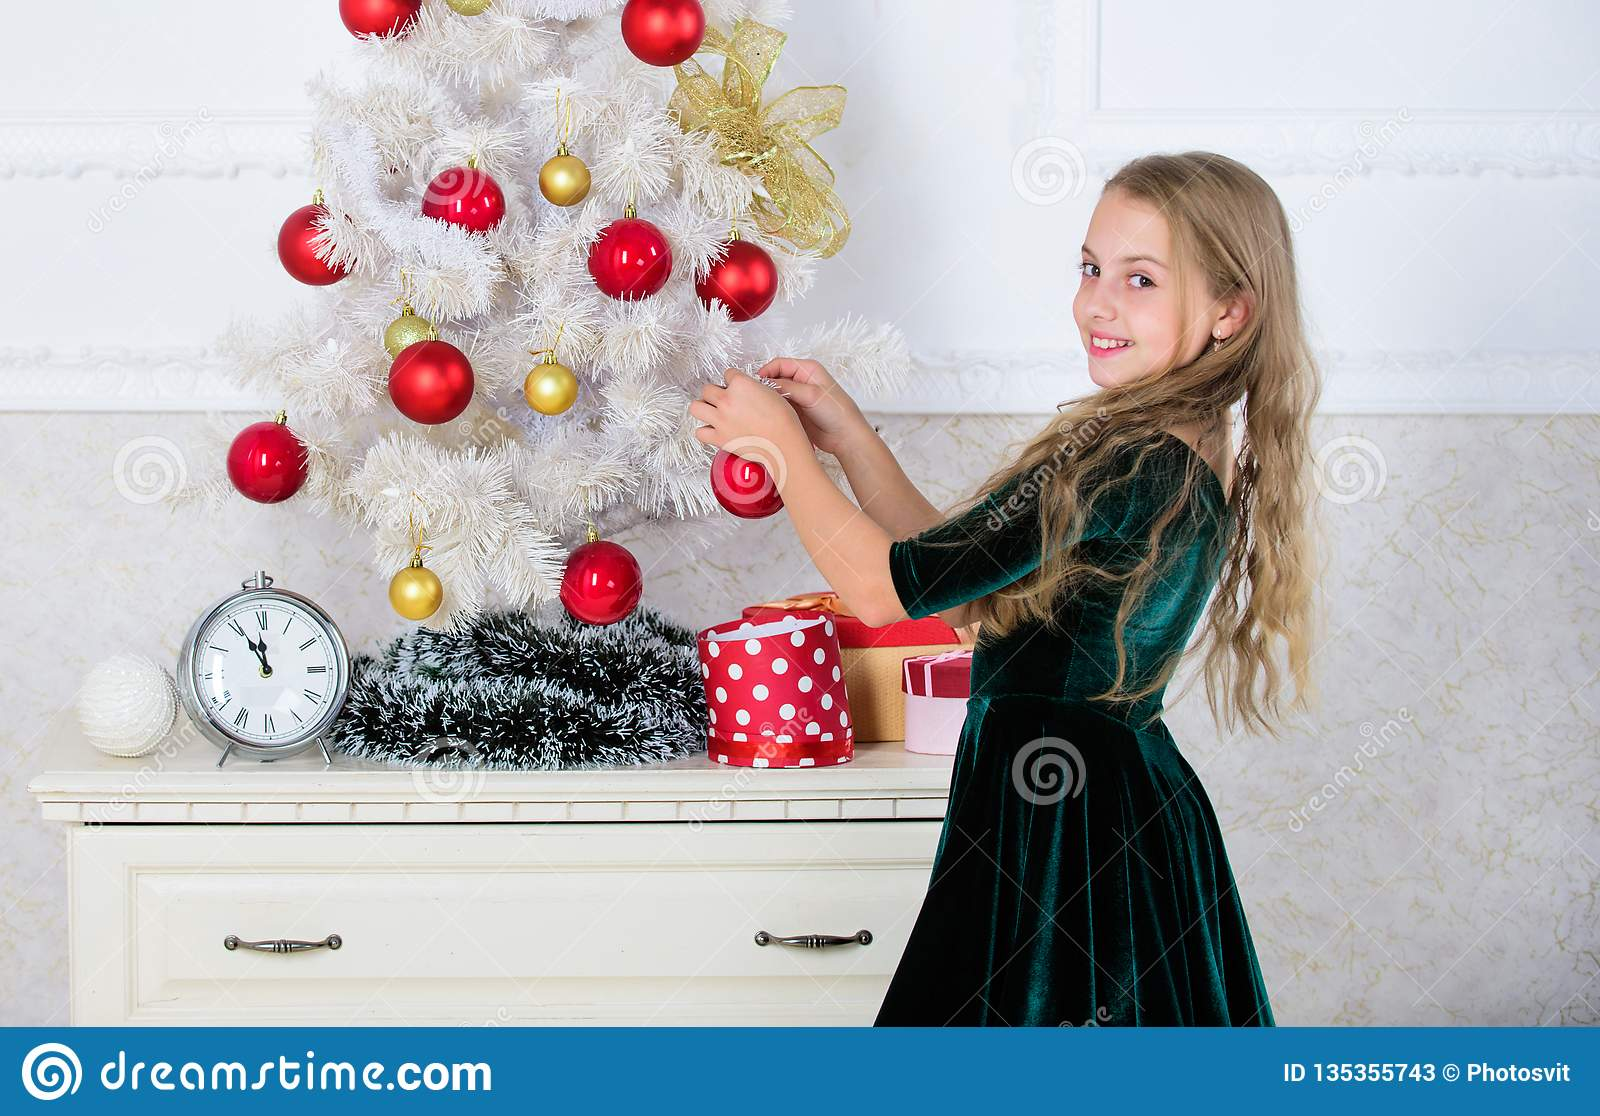 Christmas Ideas For Kids Girls.Top Christmas Decorating Ideas For Kids Room Kids Can